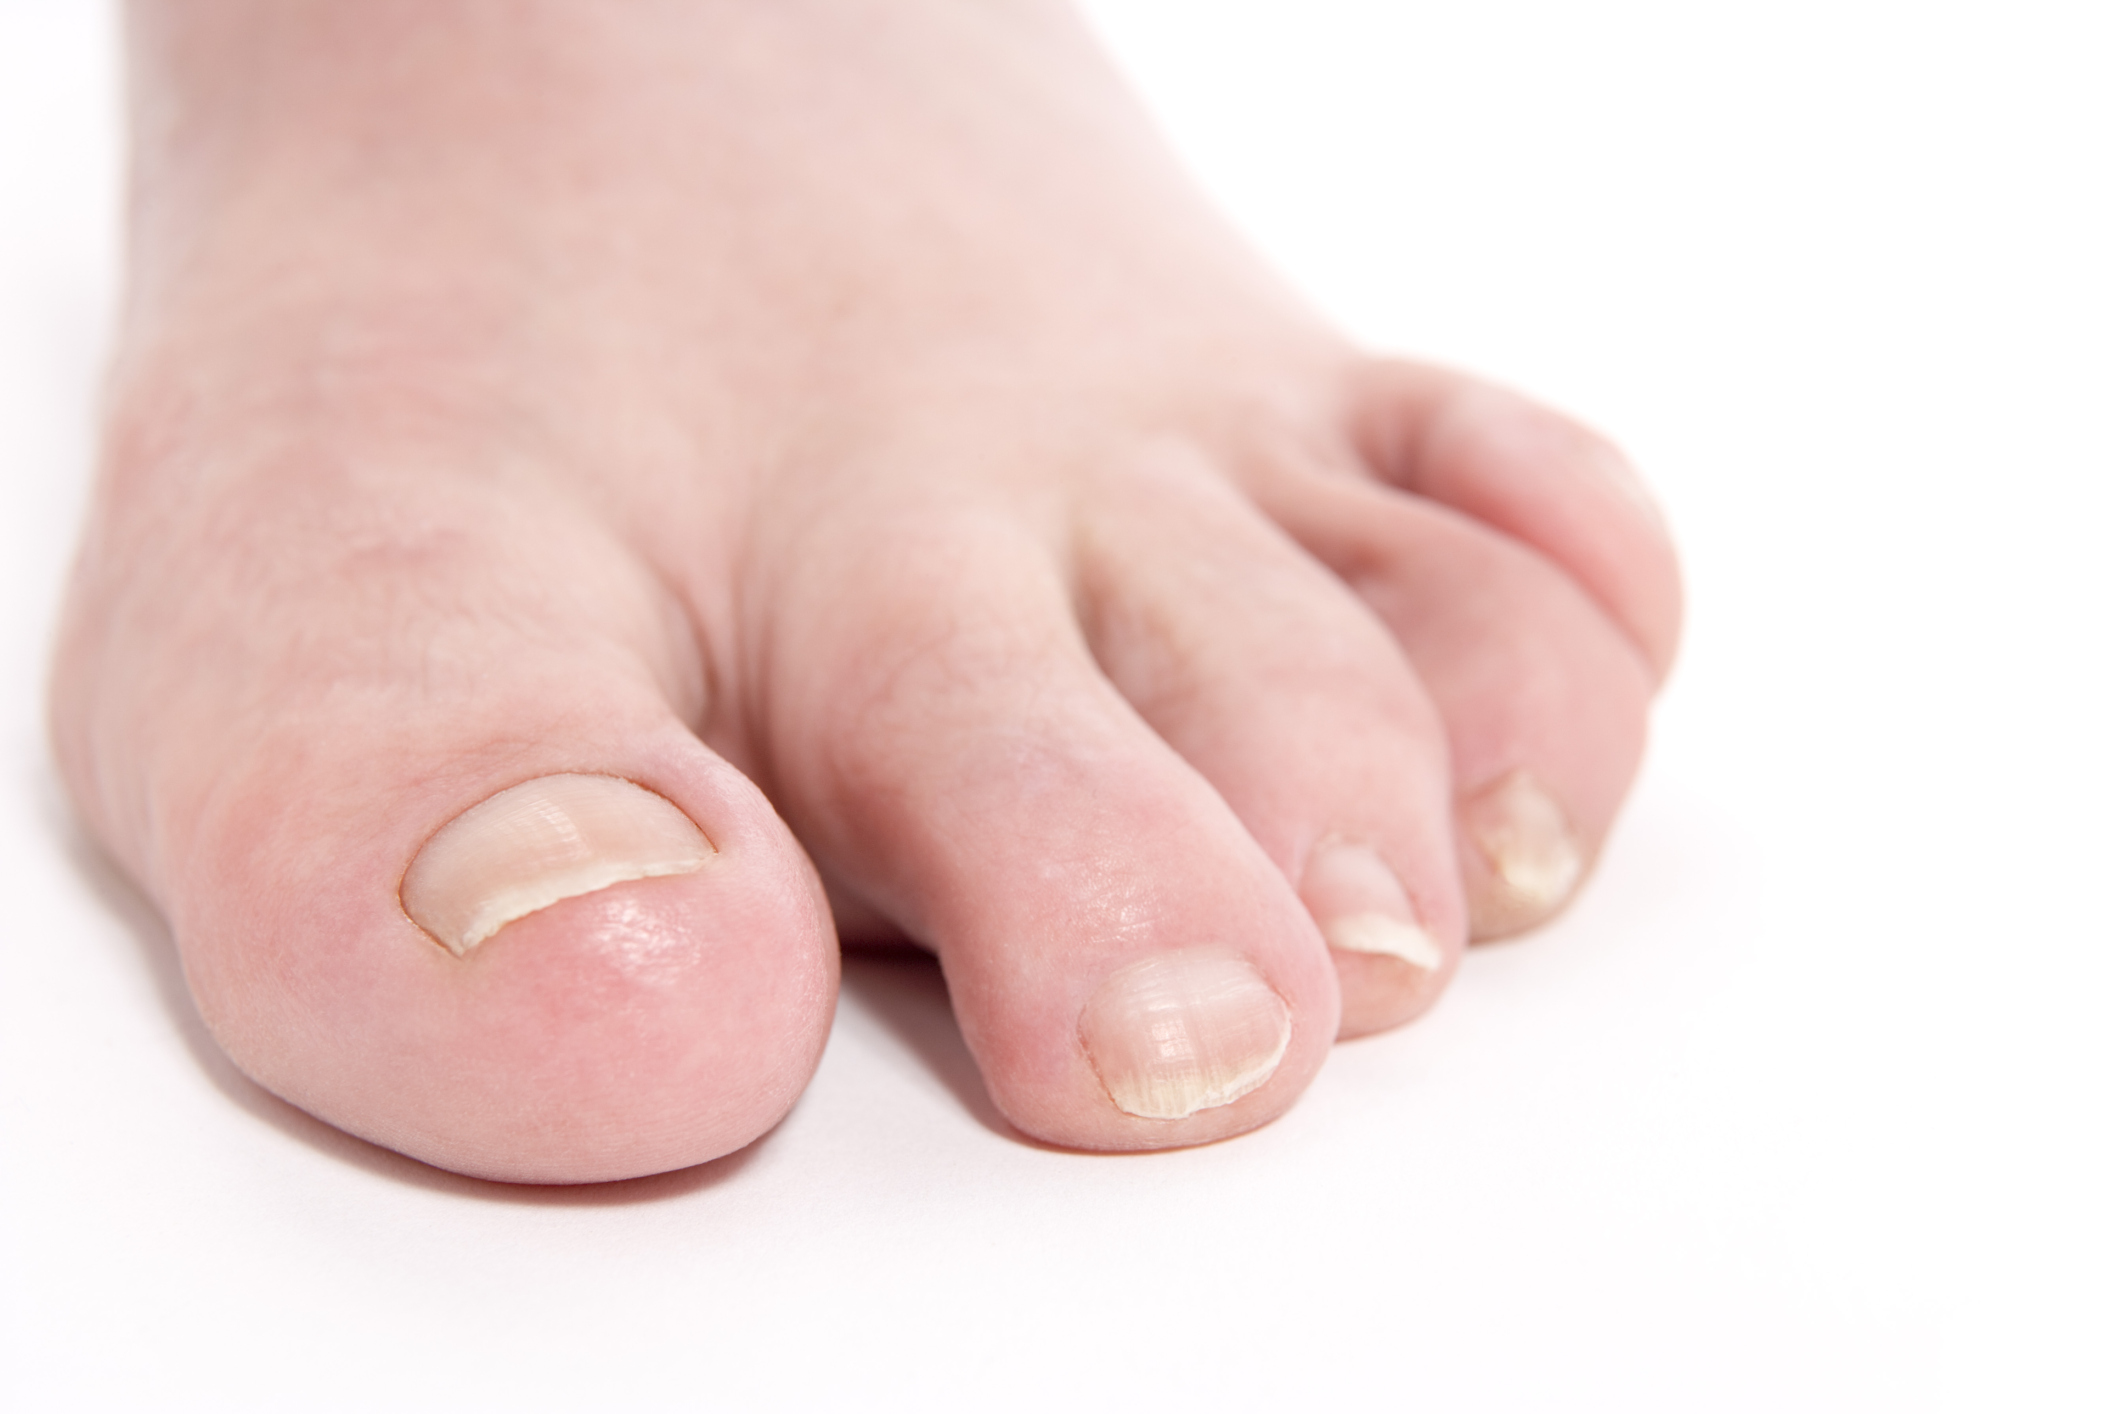 Signs of Infection From Stepping on a Nail